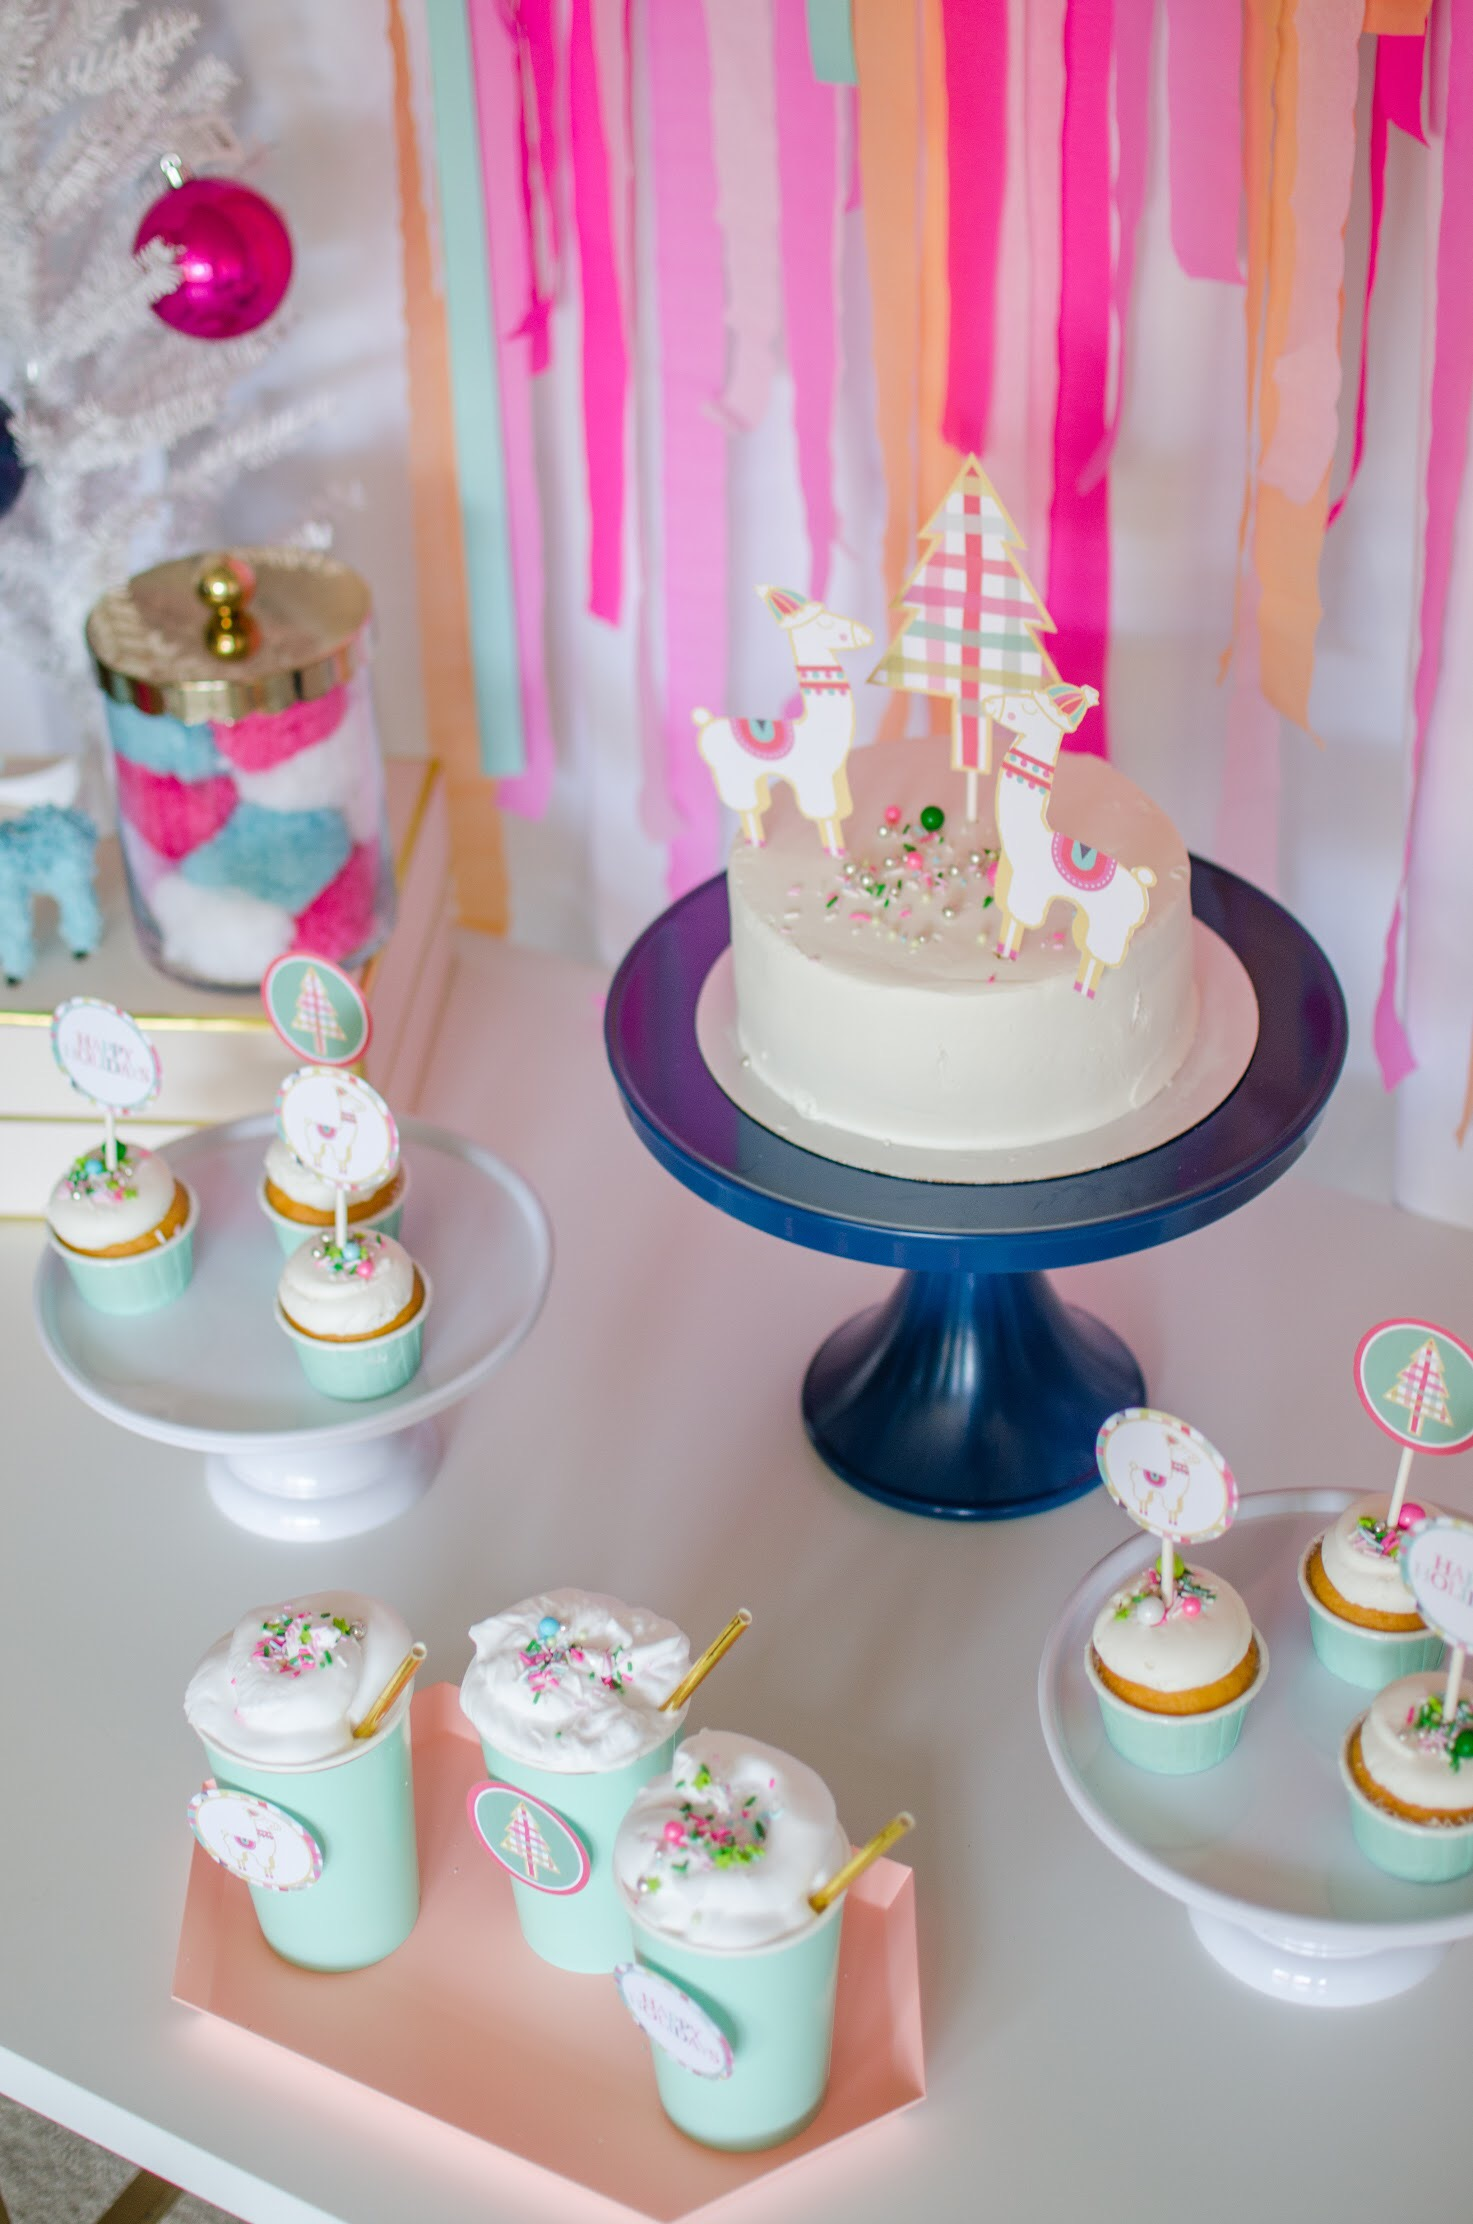 Christmas llama party dessert table in pink and mint green. See more from this llama Christmas party by Mint Event Design at www.minteventdesign.com and download your free printables #holidayparty #partyideas #christmasparty #holidaypartyideas #llamaparty #llamalove #partyprintables #freeprintables